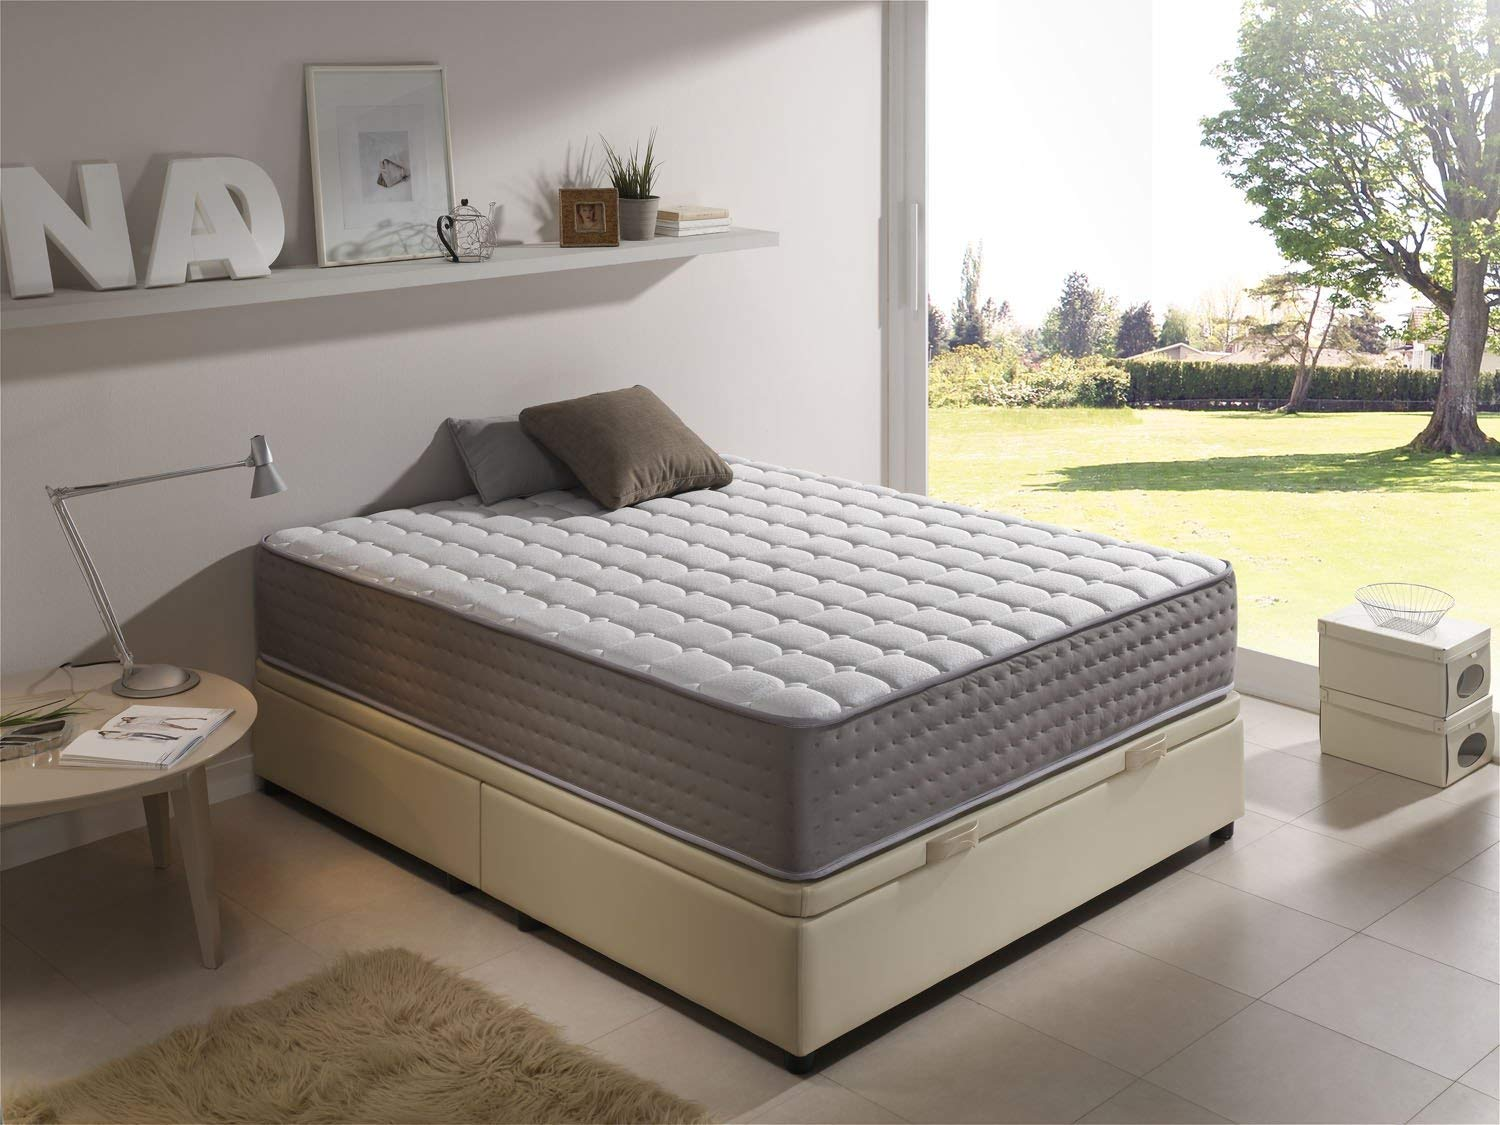 SIMPUR RELAX | BioPure Graphene Memory Foam Mattress Depth 30 cm | Free Pillow Memory Foam Promotion Included | 150x200 | Electro Biological.| Extra confort multi layer matress .| Graphene therapy with particles ability to absorb moisture and odors. |100% Quality- Satisfaction Warranty | Made 100% in EU | All standard sizes available.